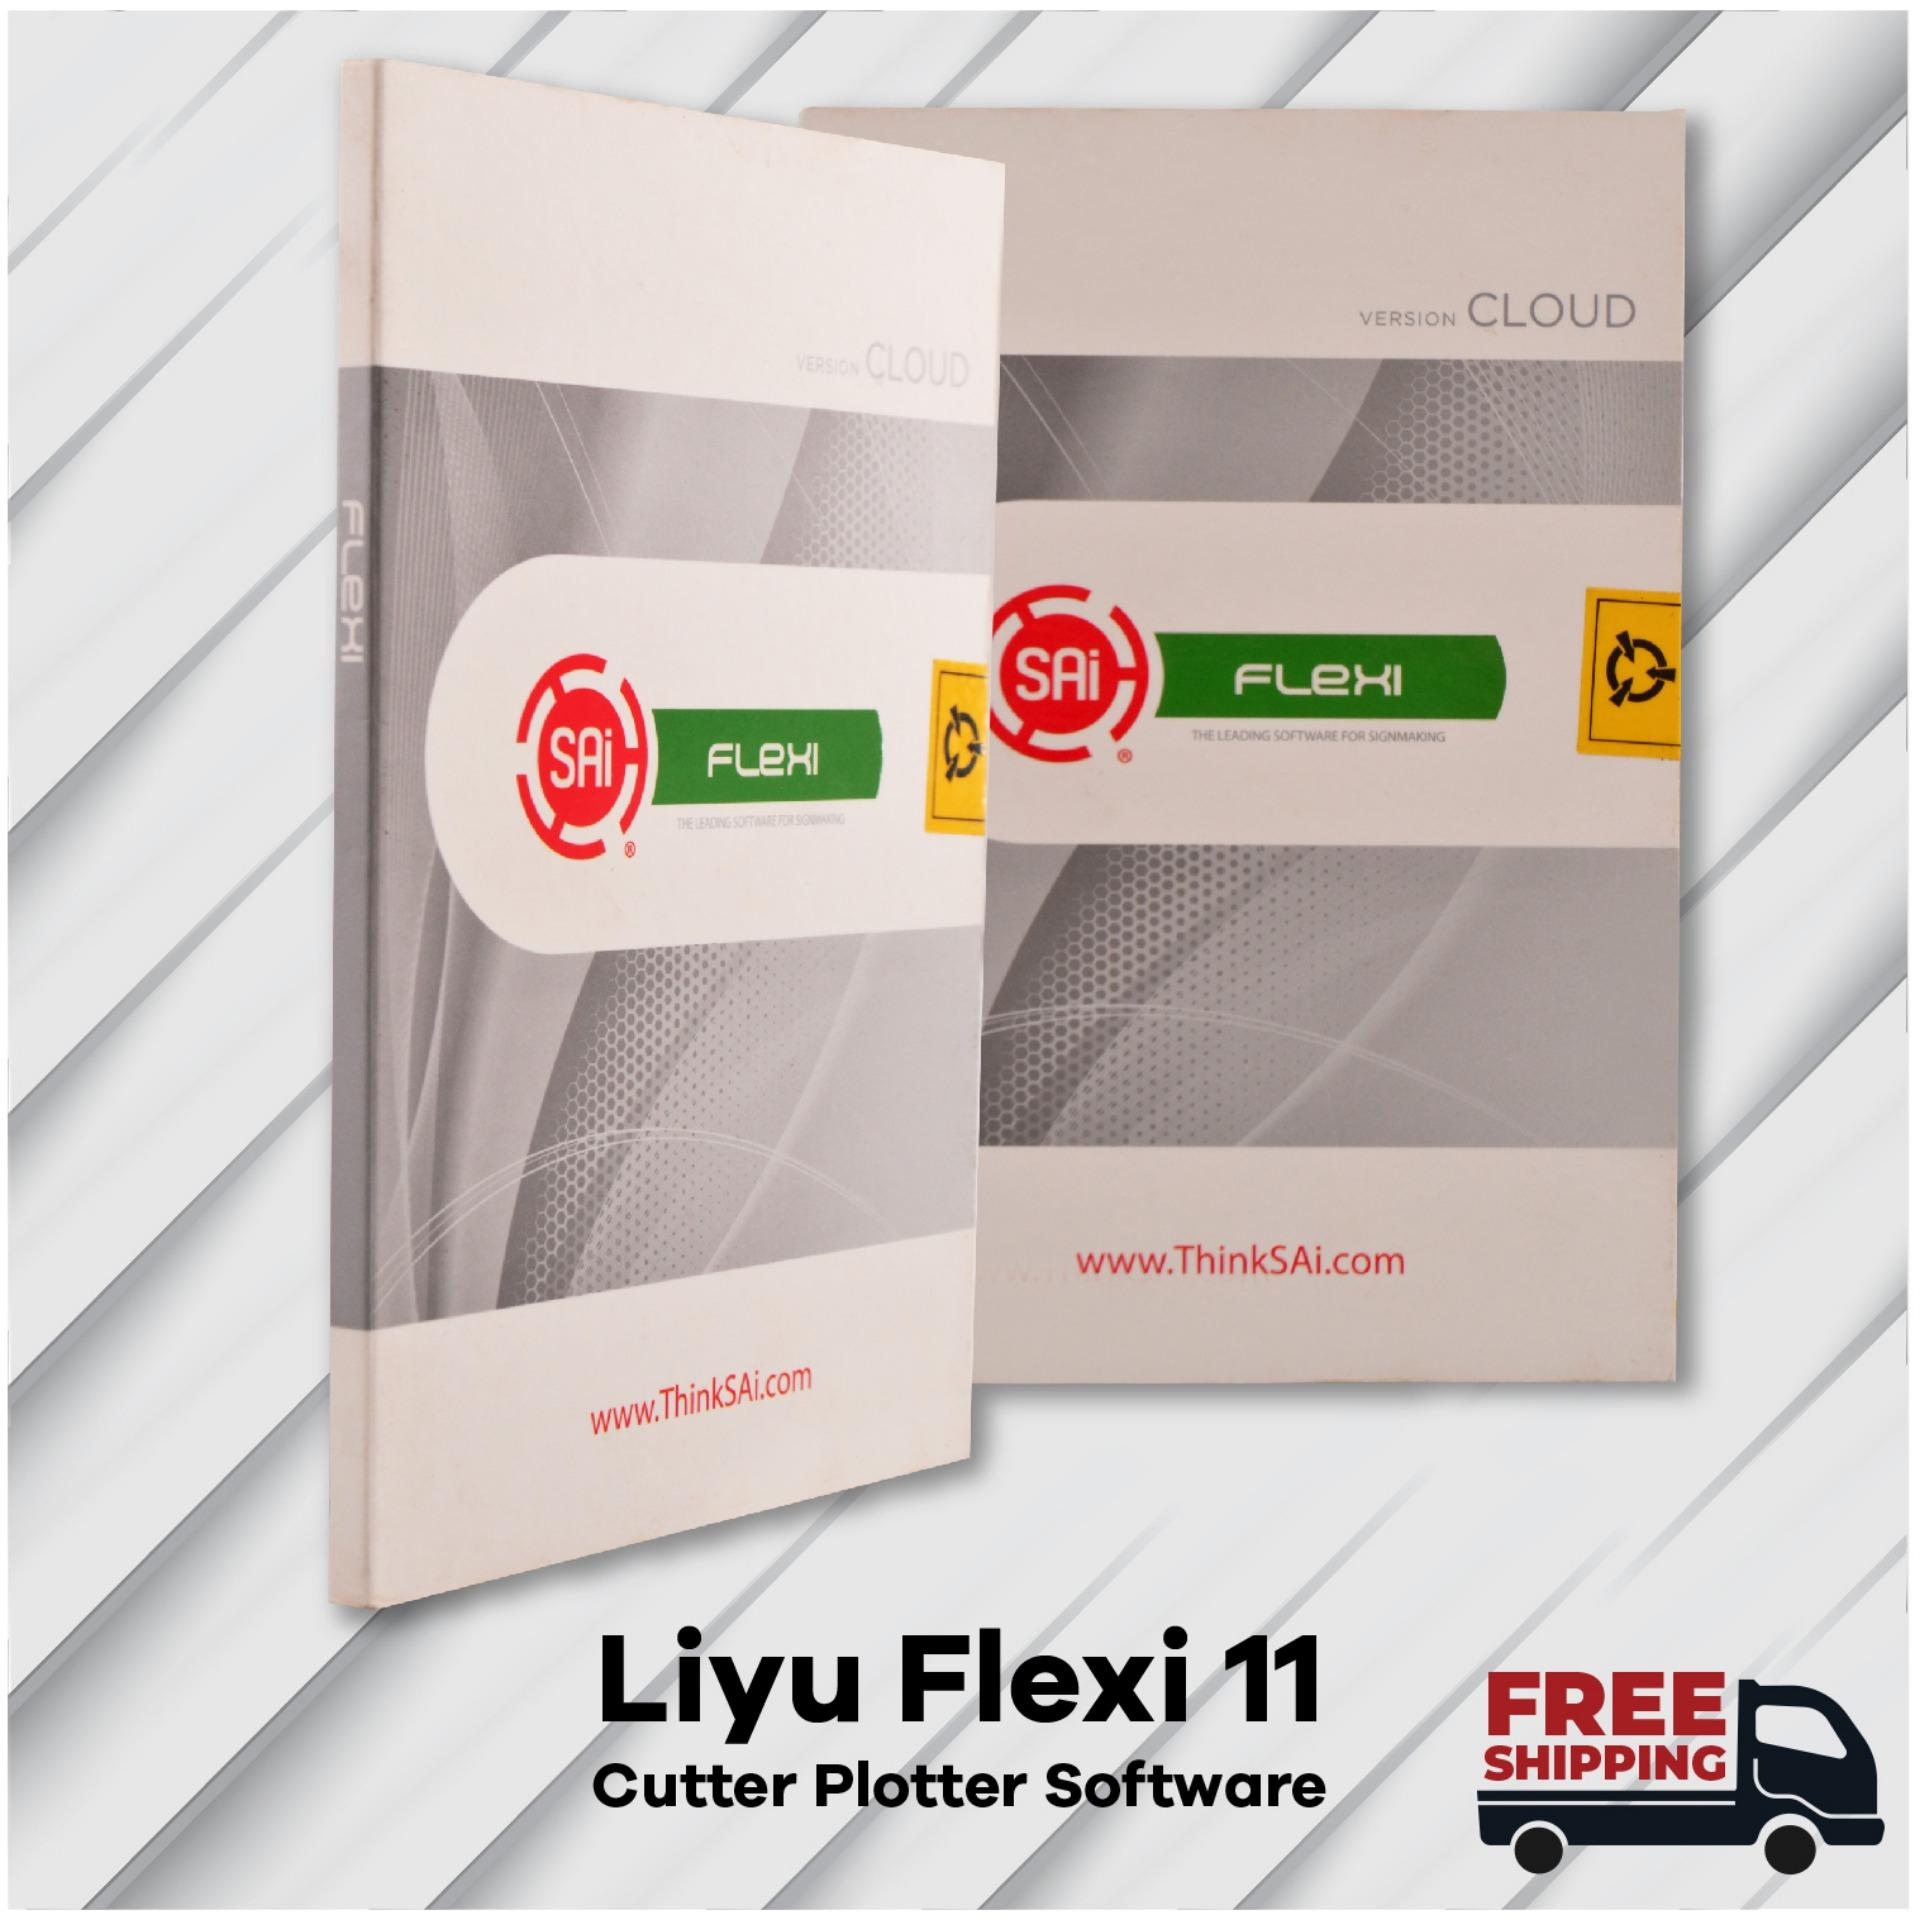 Liyu Flexi 11 Cutter Plotter Software